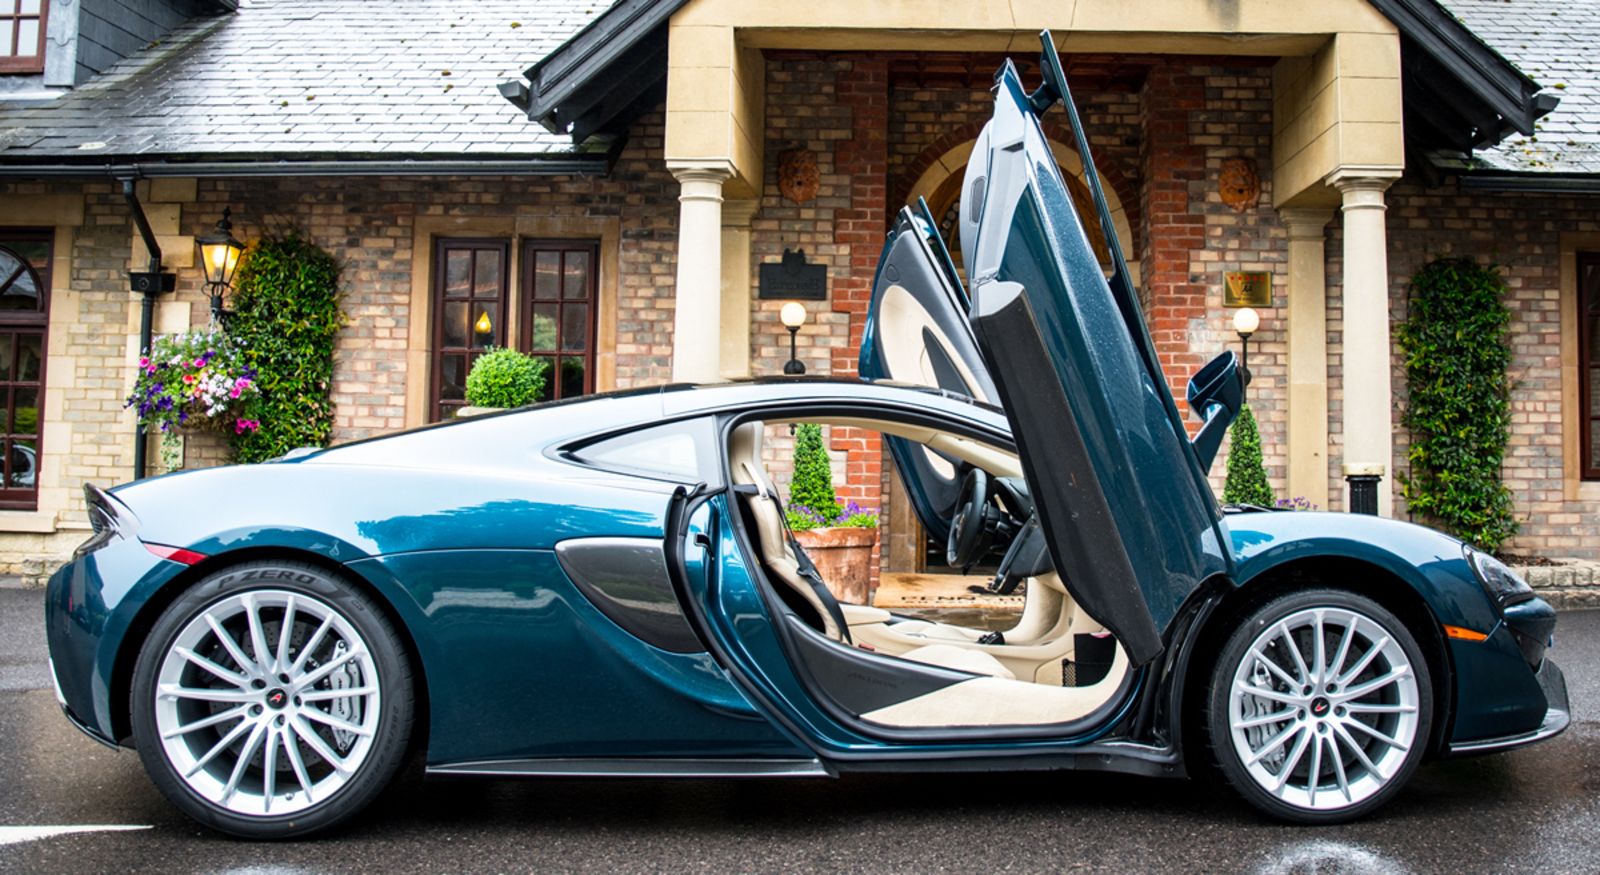 Coolhunting: The Awesome McLaren 570GT